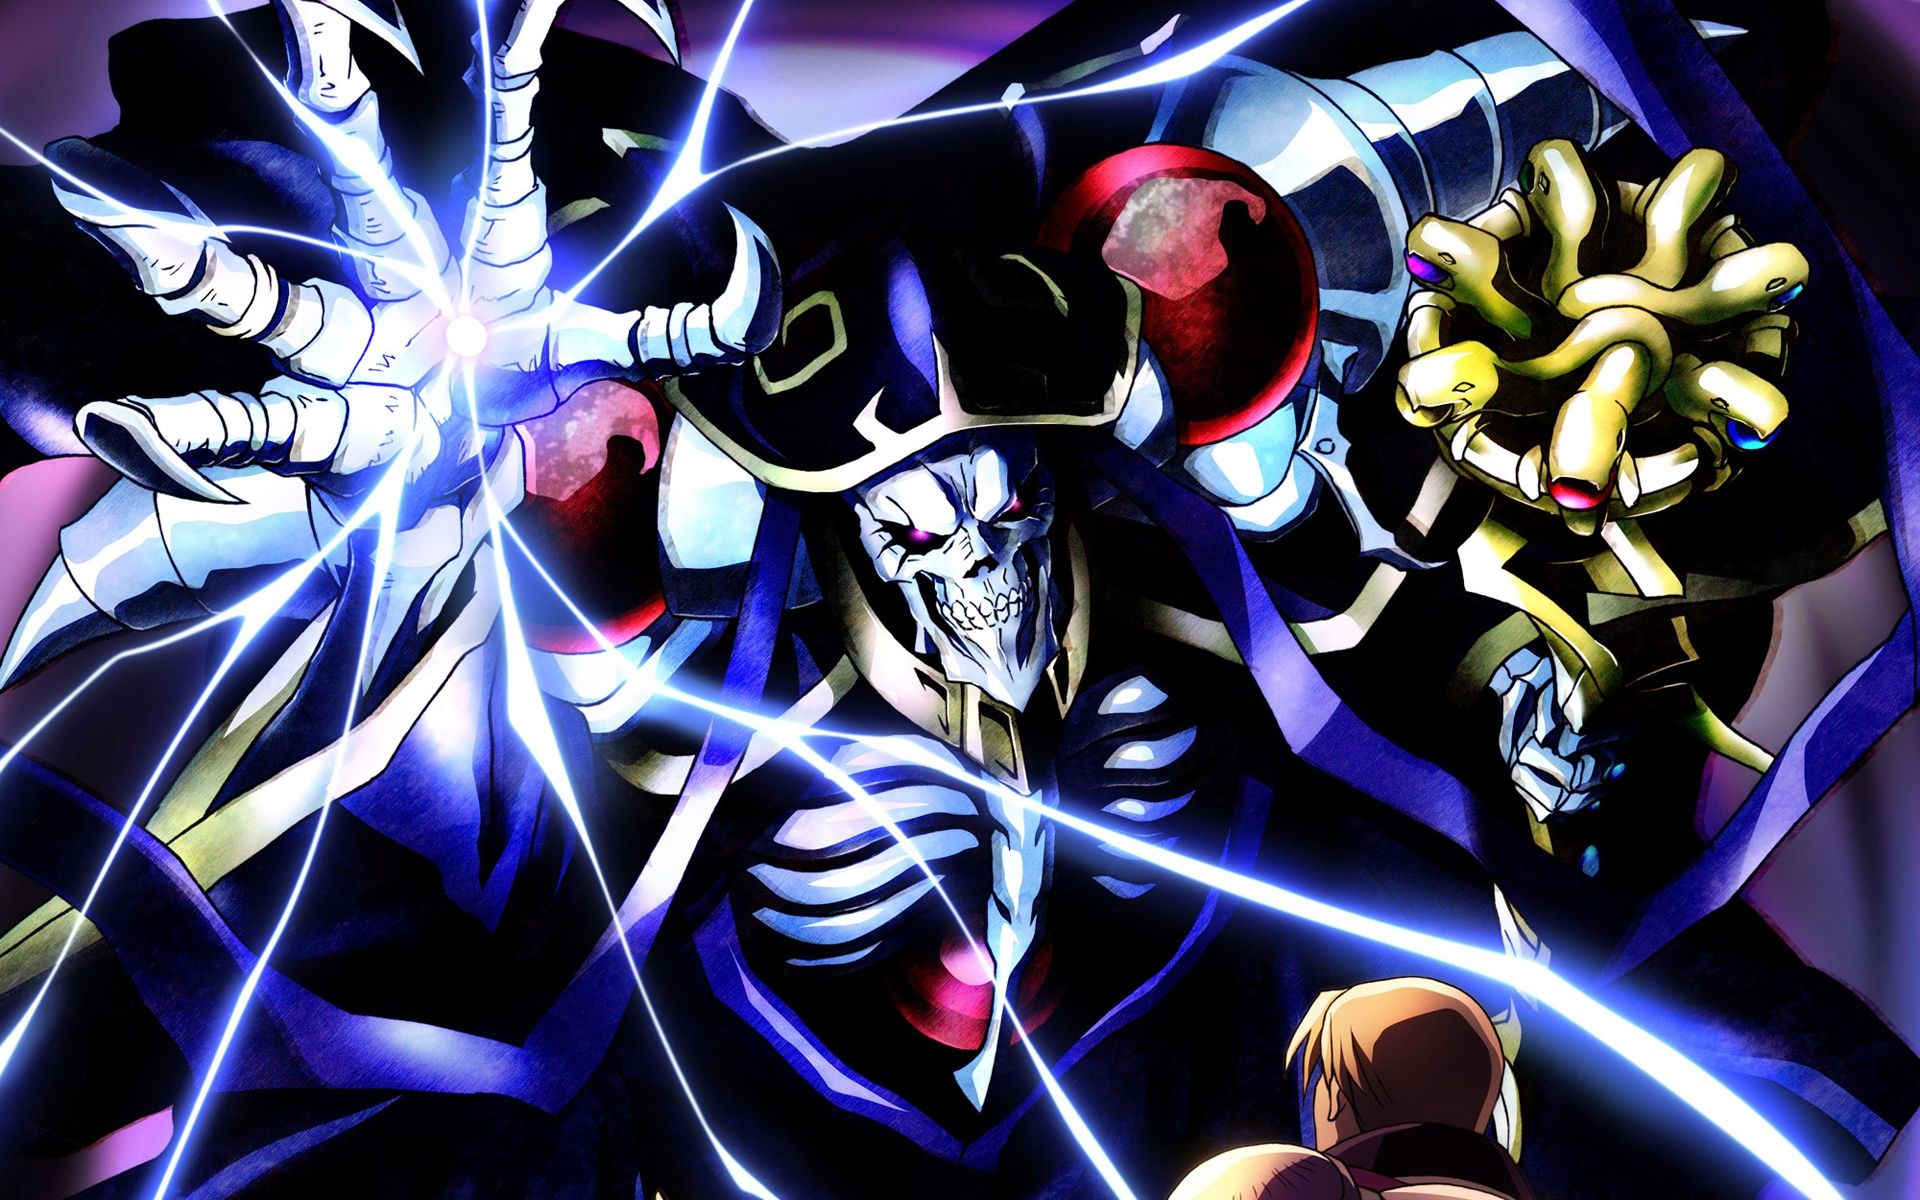 Ainz Ooal Gown Computer Wallpapers Desktop Backgrounds 1920x1200 Id 655516 Anime Wallpaper Anime Madhouse Anime